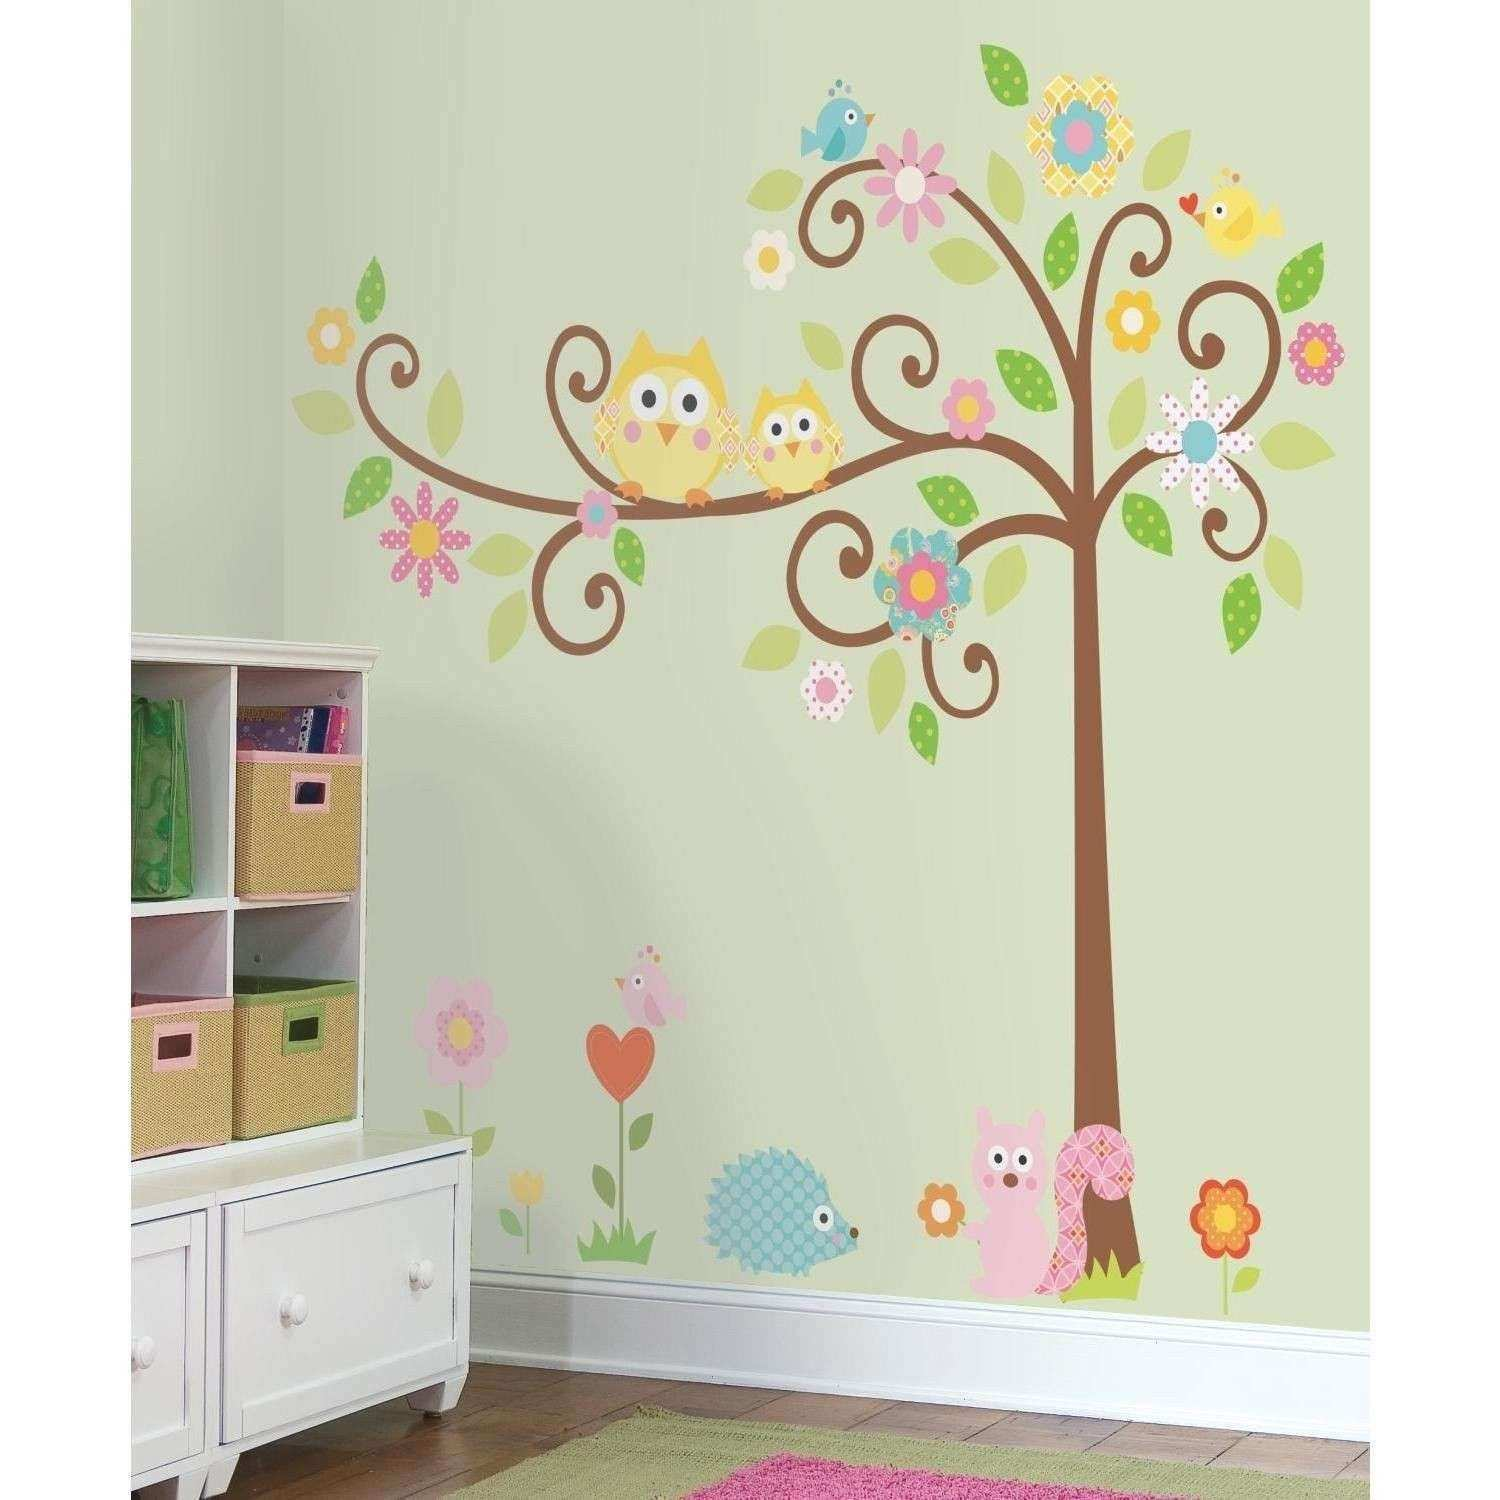 Wall Decor Stickers for Bedroom Unique Palm Tree Wall Decals Unique